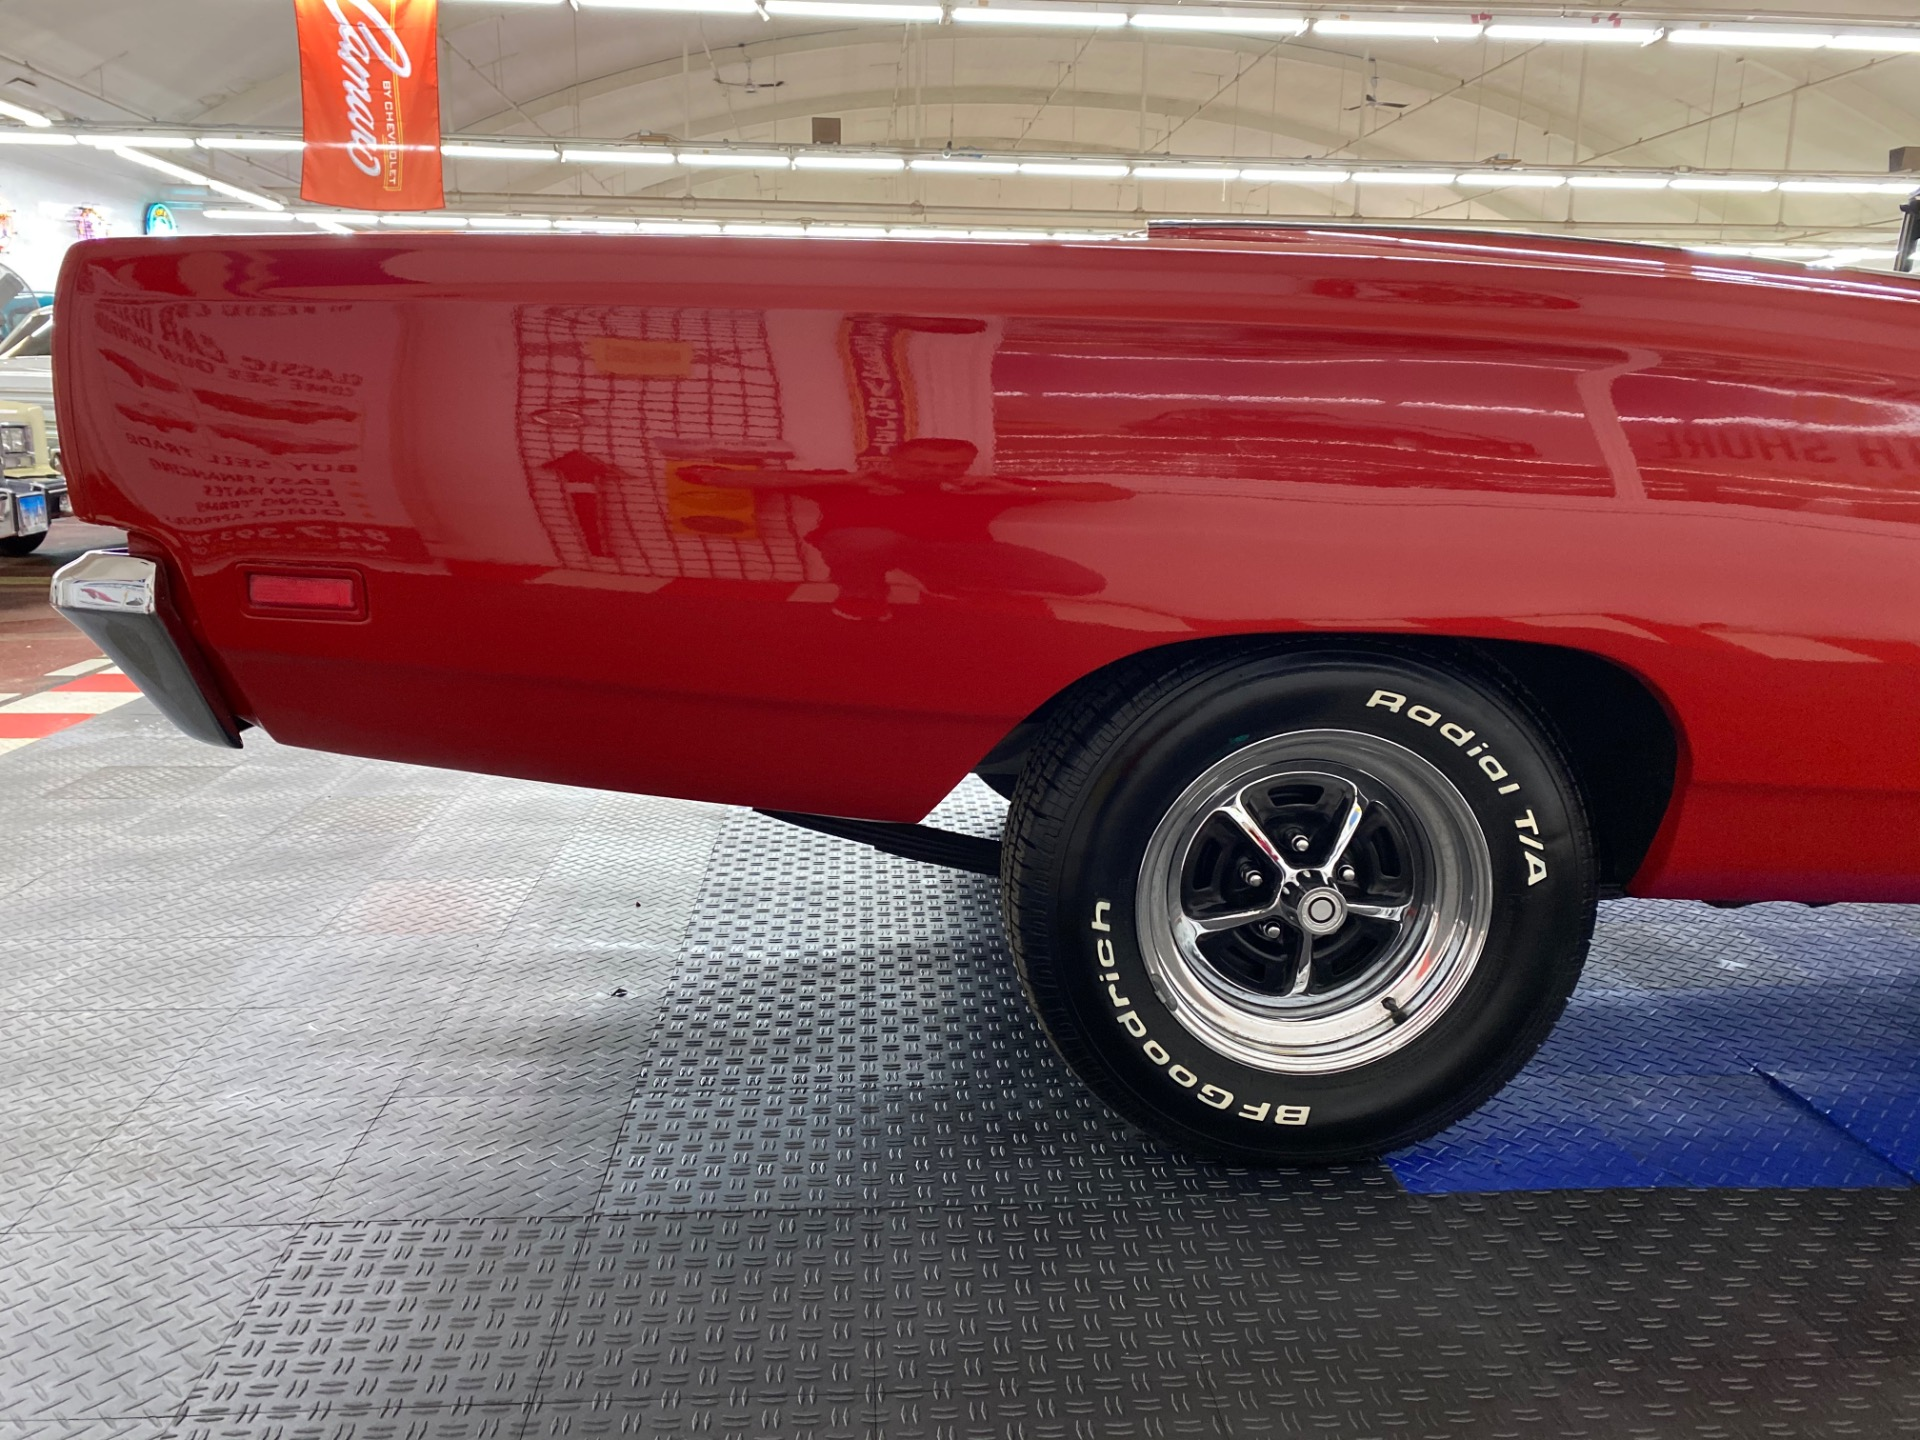 Used 1969 Plymouth Road Runner -CONVERTIBLE - 440 ENGINE - LOTS OF POWER - NICE PAINT - SEE VIDEO | Mundelein, IL